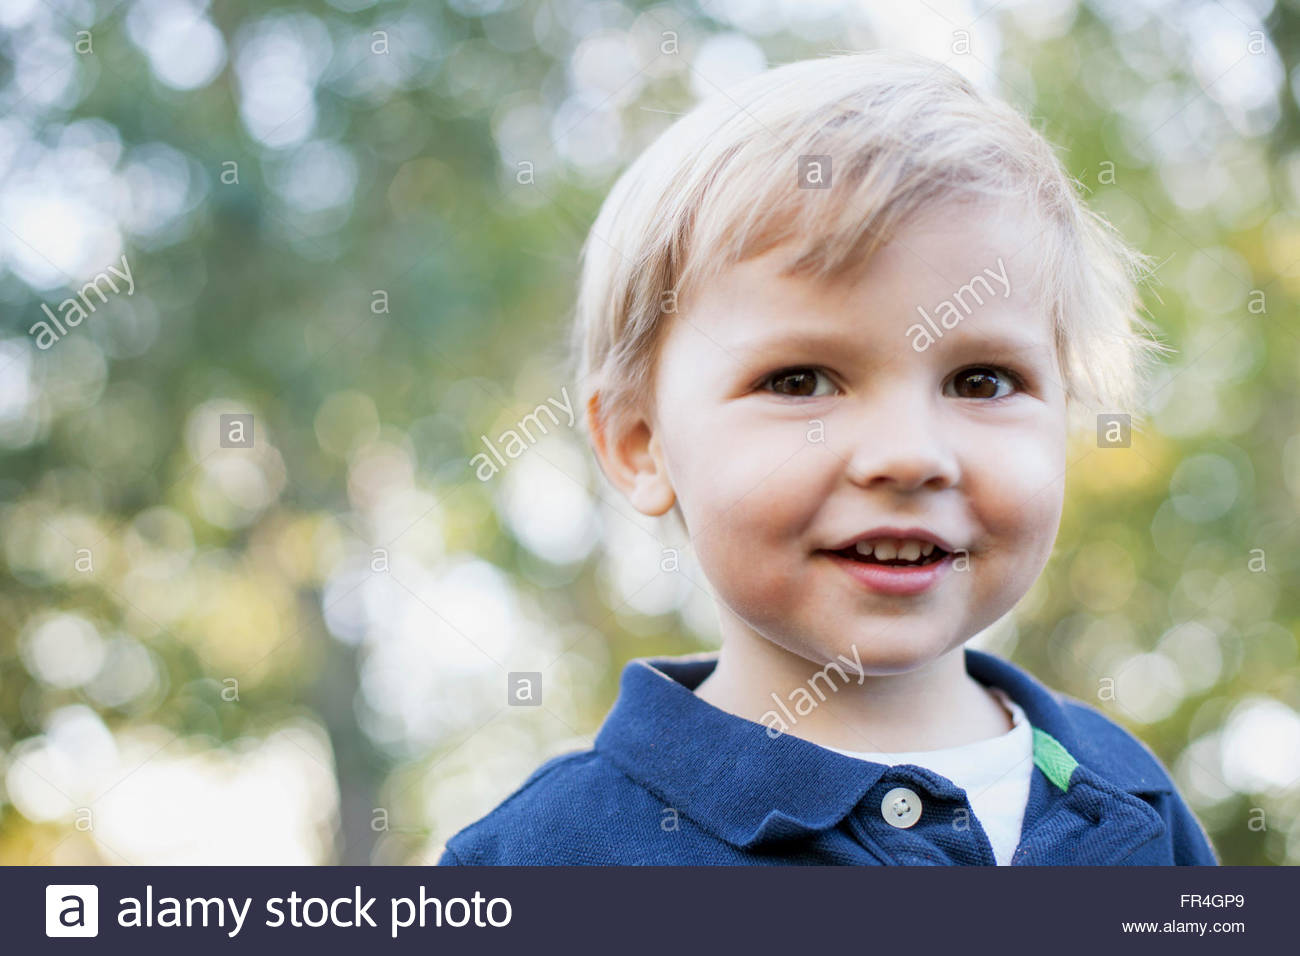 60491960a3ef 2 3 Year Old Boy Stock Photos & 2 3 Year Old Boy Stock Images - Alamy